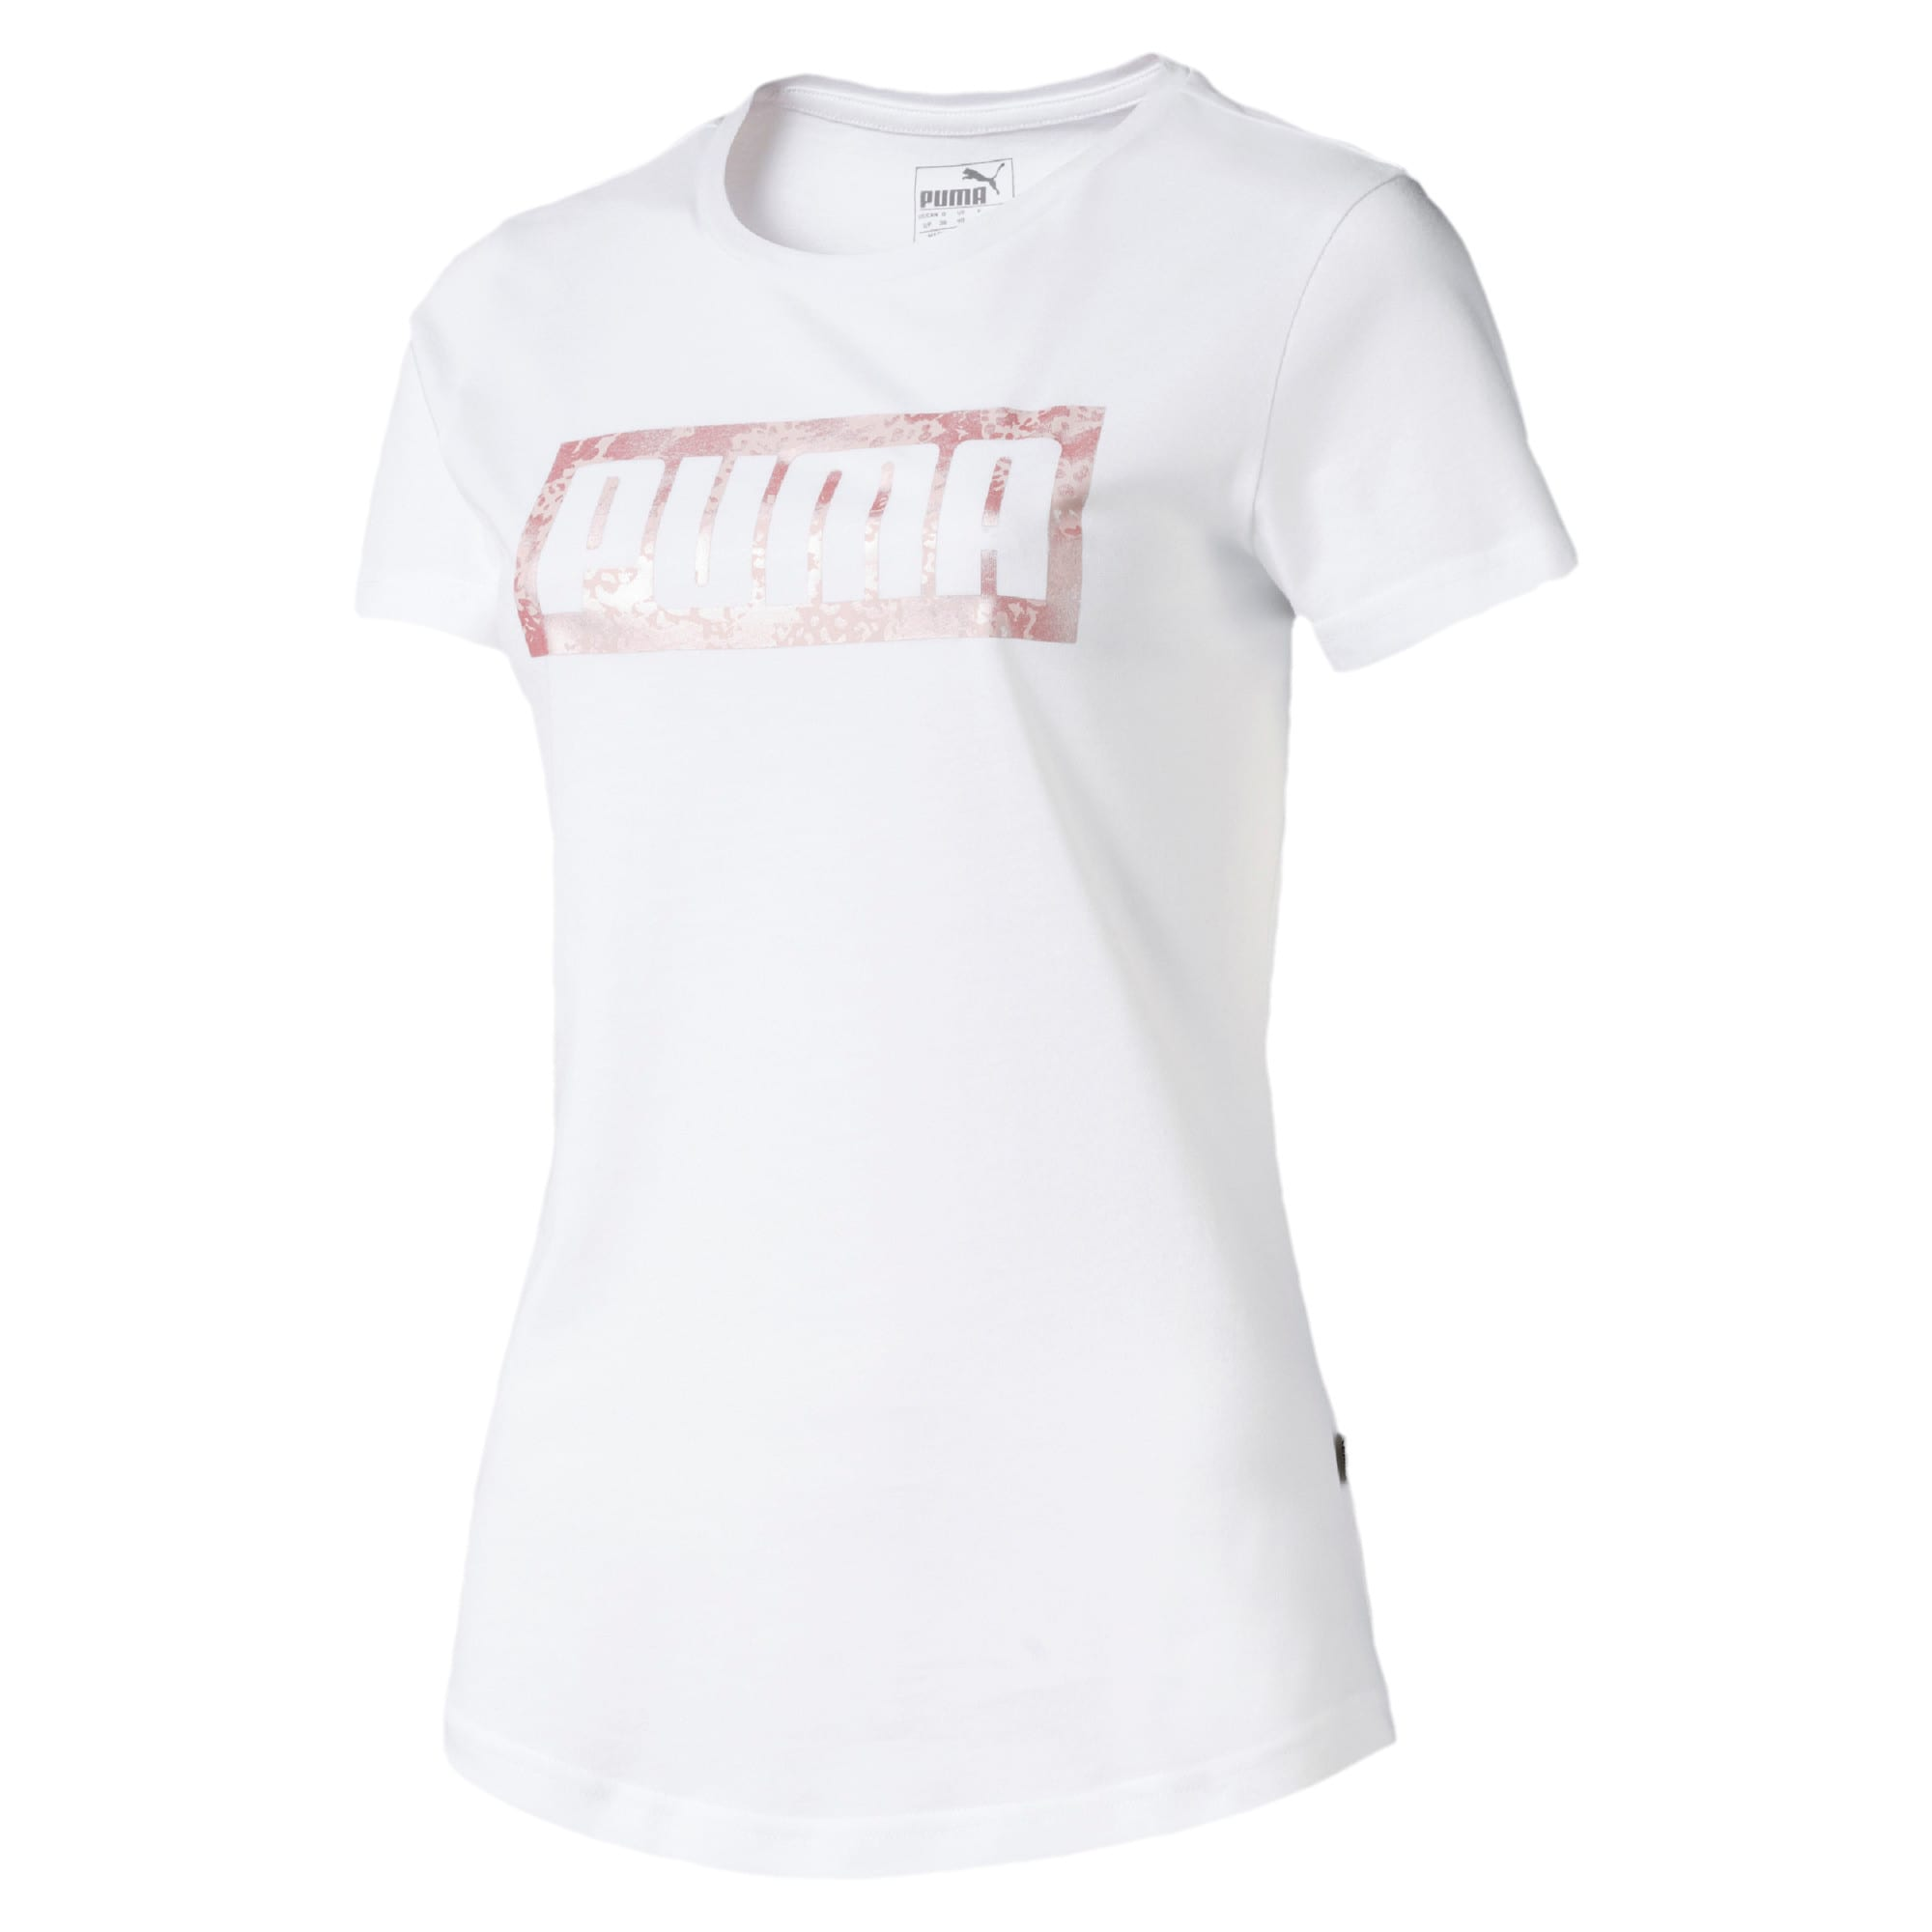 Graphic Logo Women's Tee, Puma White, large-IND